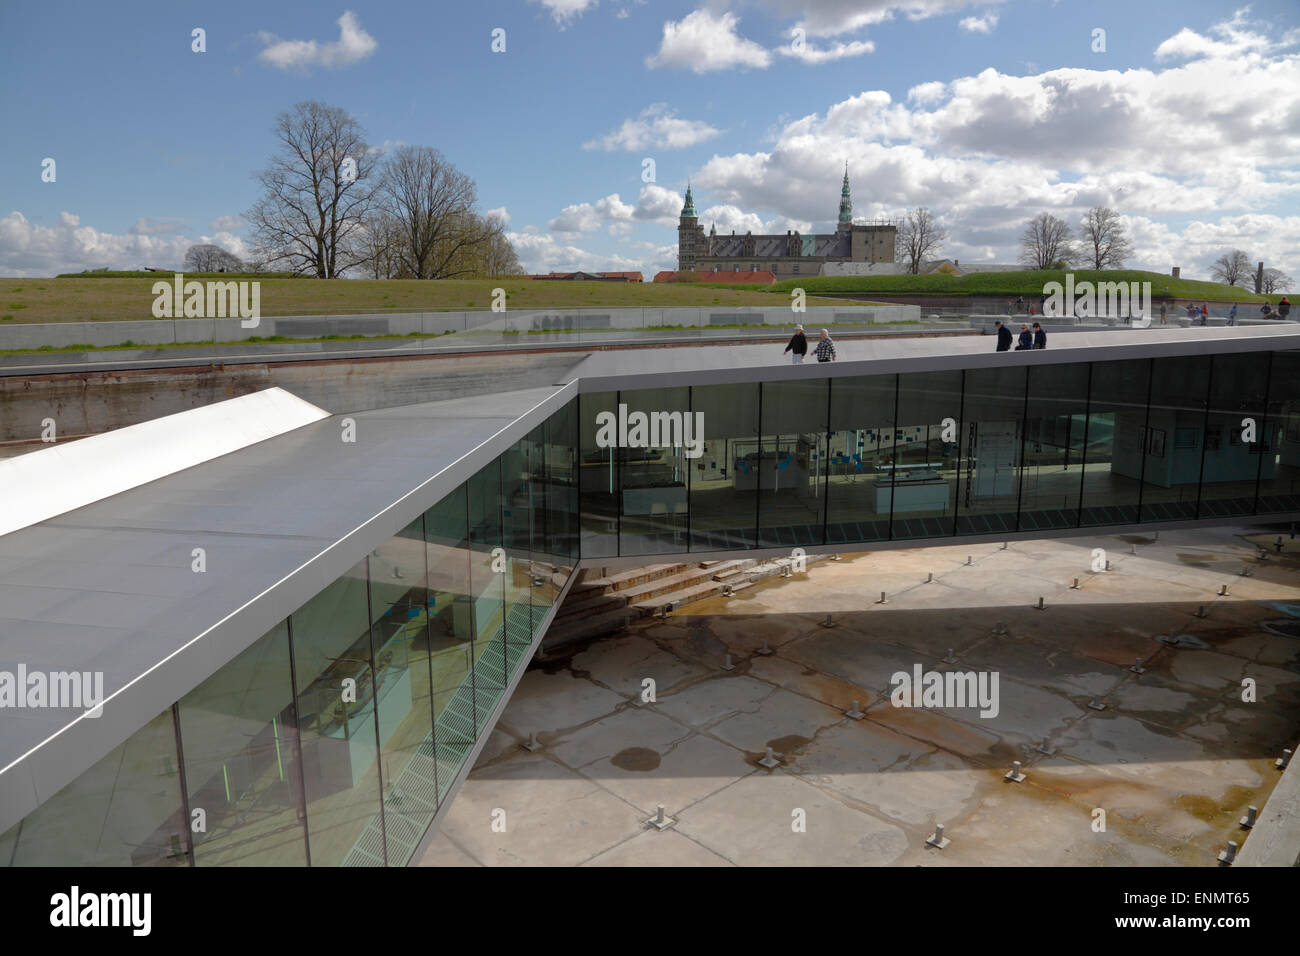 The underground Danish Maritime Museum, M/S Museet for Søfart, designed by Bjarke Ingels Group in front of - Stock Image